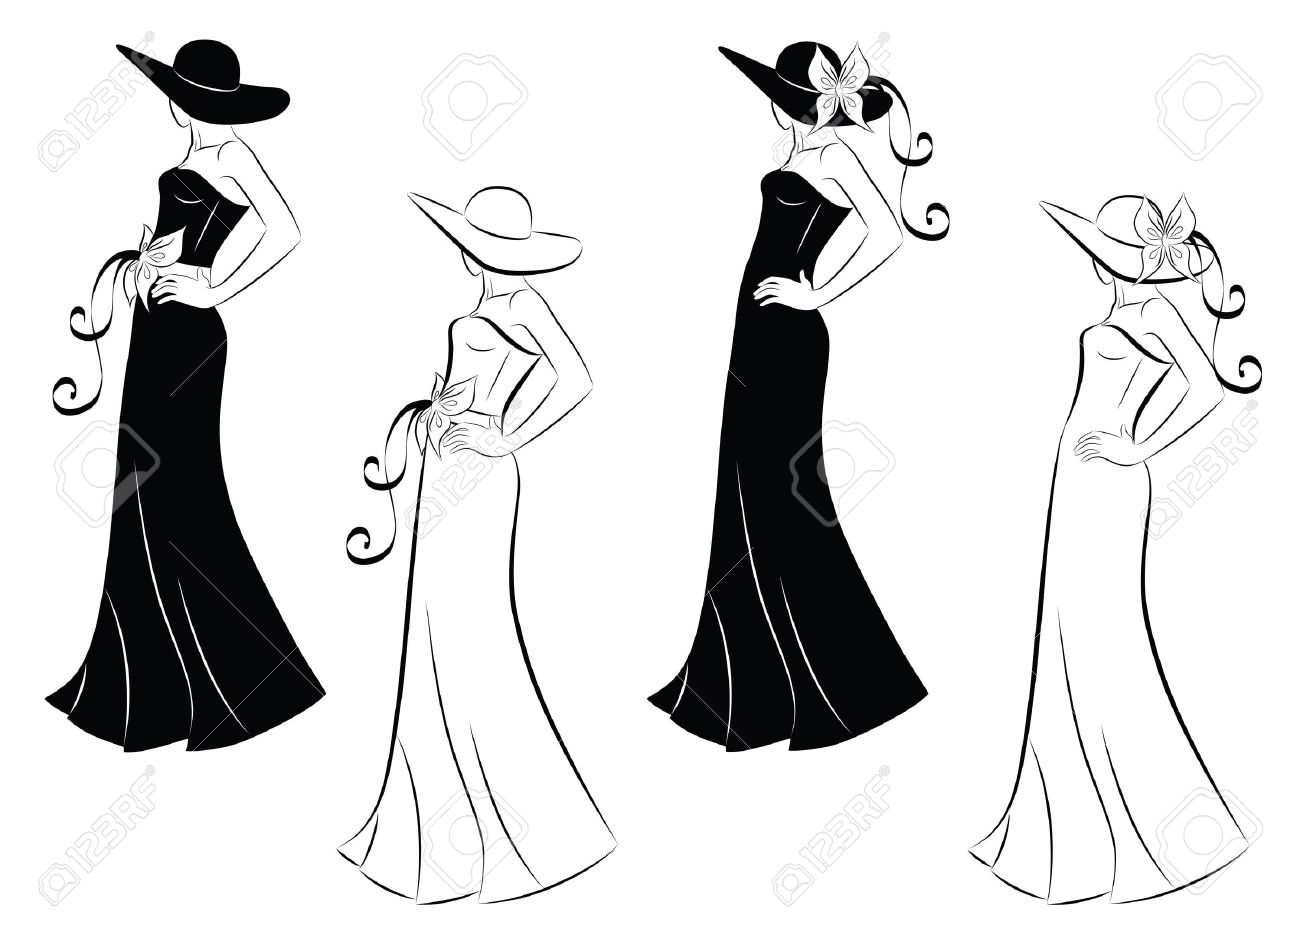 Dress in woman outline new photo